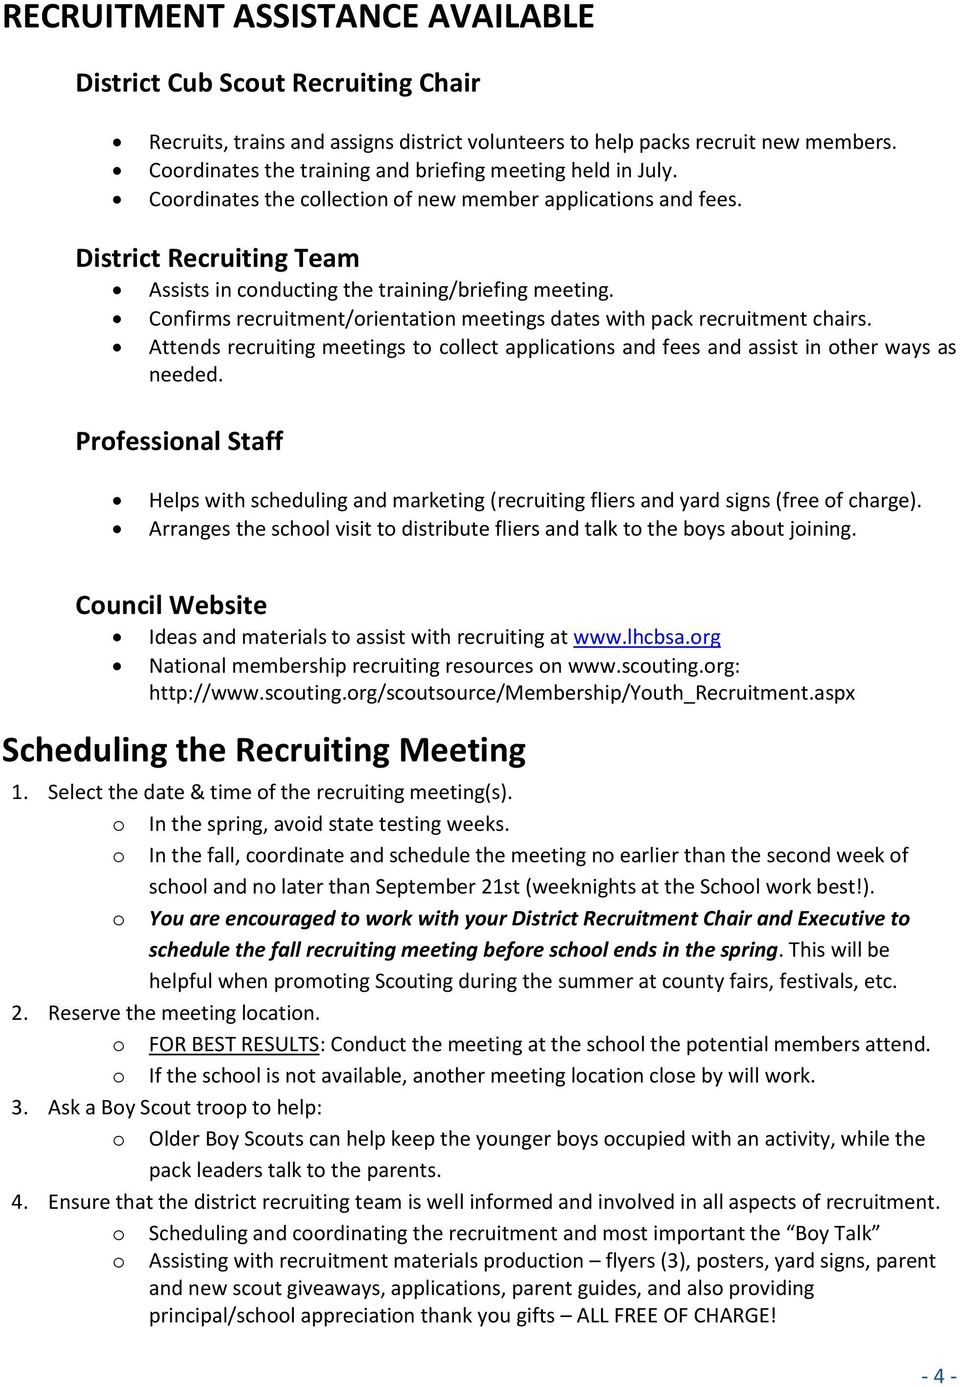 District Recruiting Team Assists in conducting the training/briefing meeting. Confirms recruitment/orientation meetings dates with pack recruitment chairs.